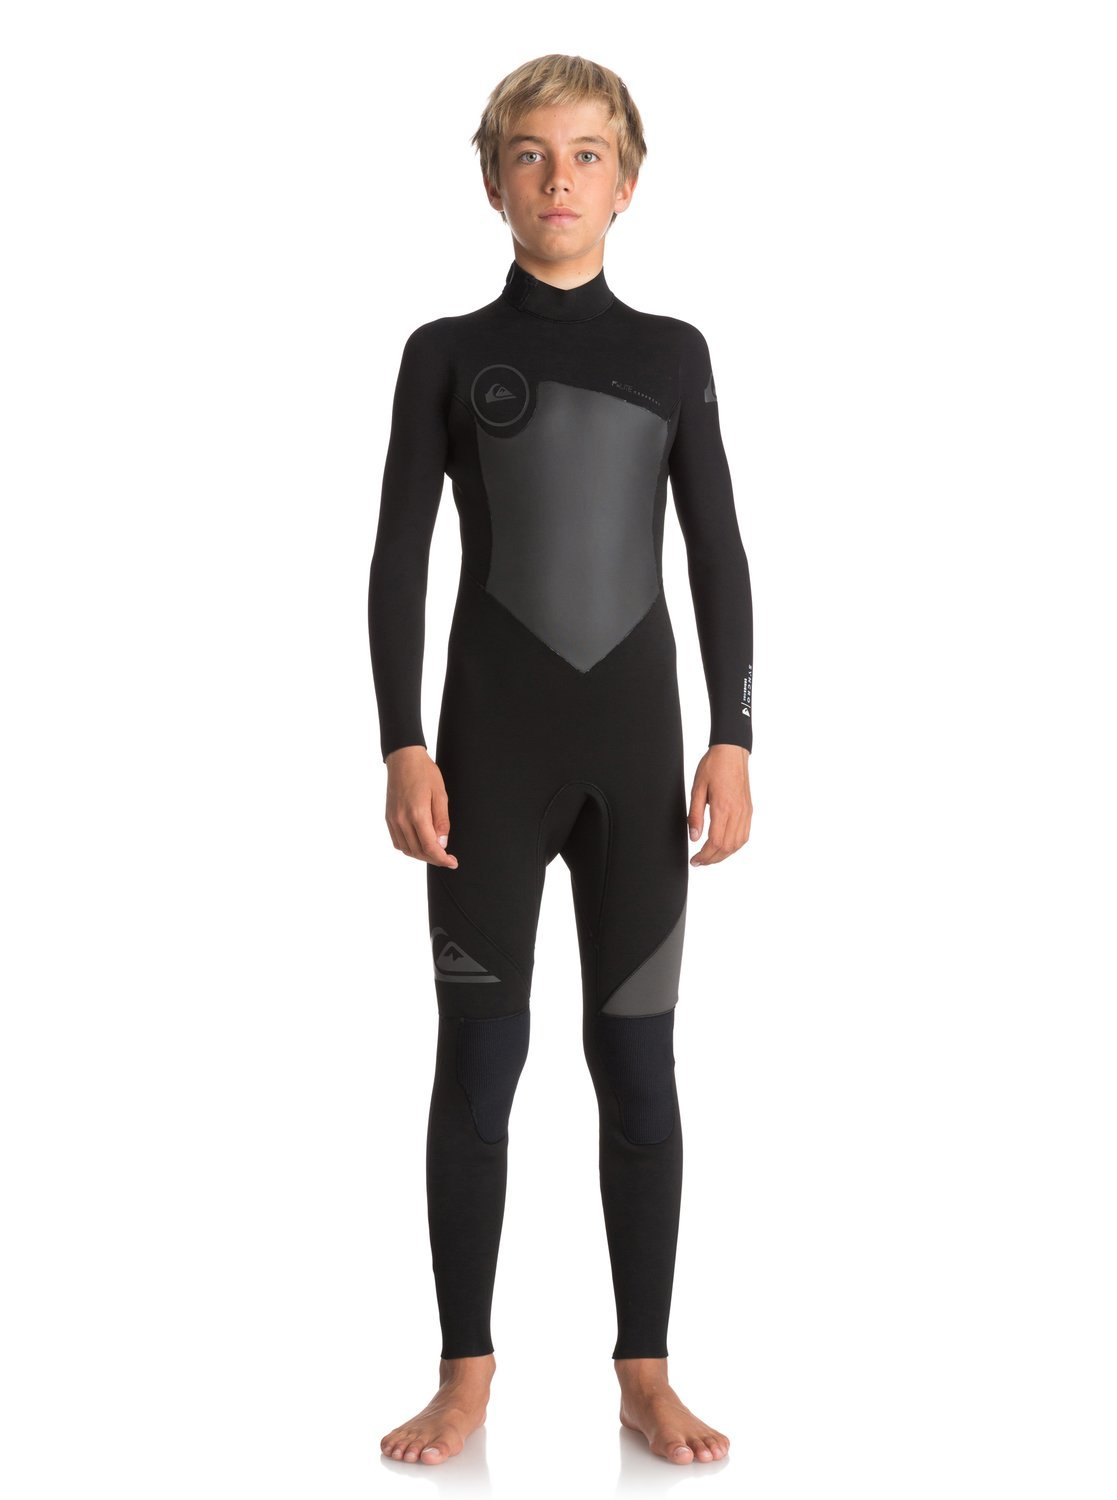 Quiksilver Boys 4/3Mm Syncro Series Back Zip Gbs - Full Wetsuit Back Zip Gbs Wetsuit Black 8 by Quiksilver